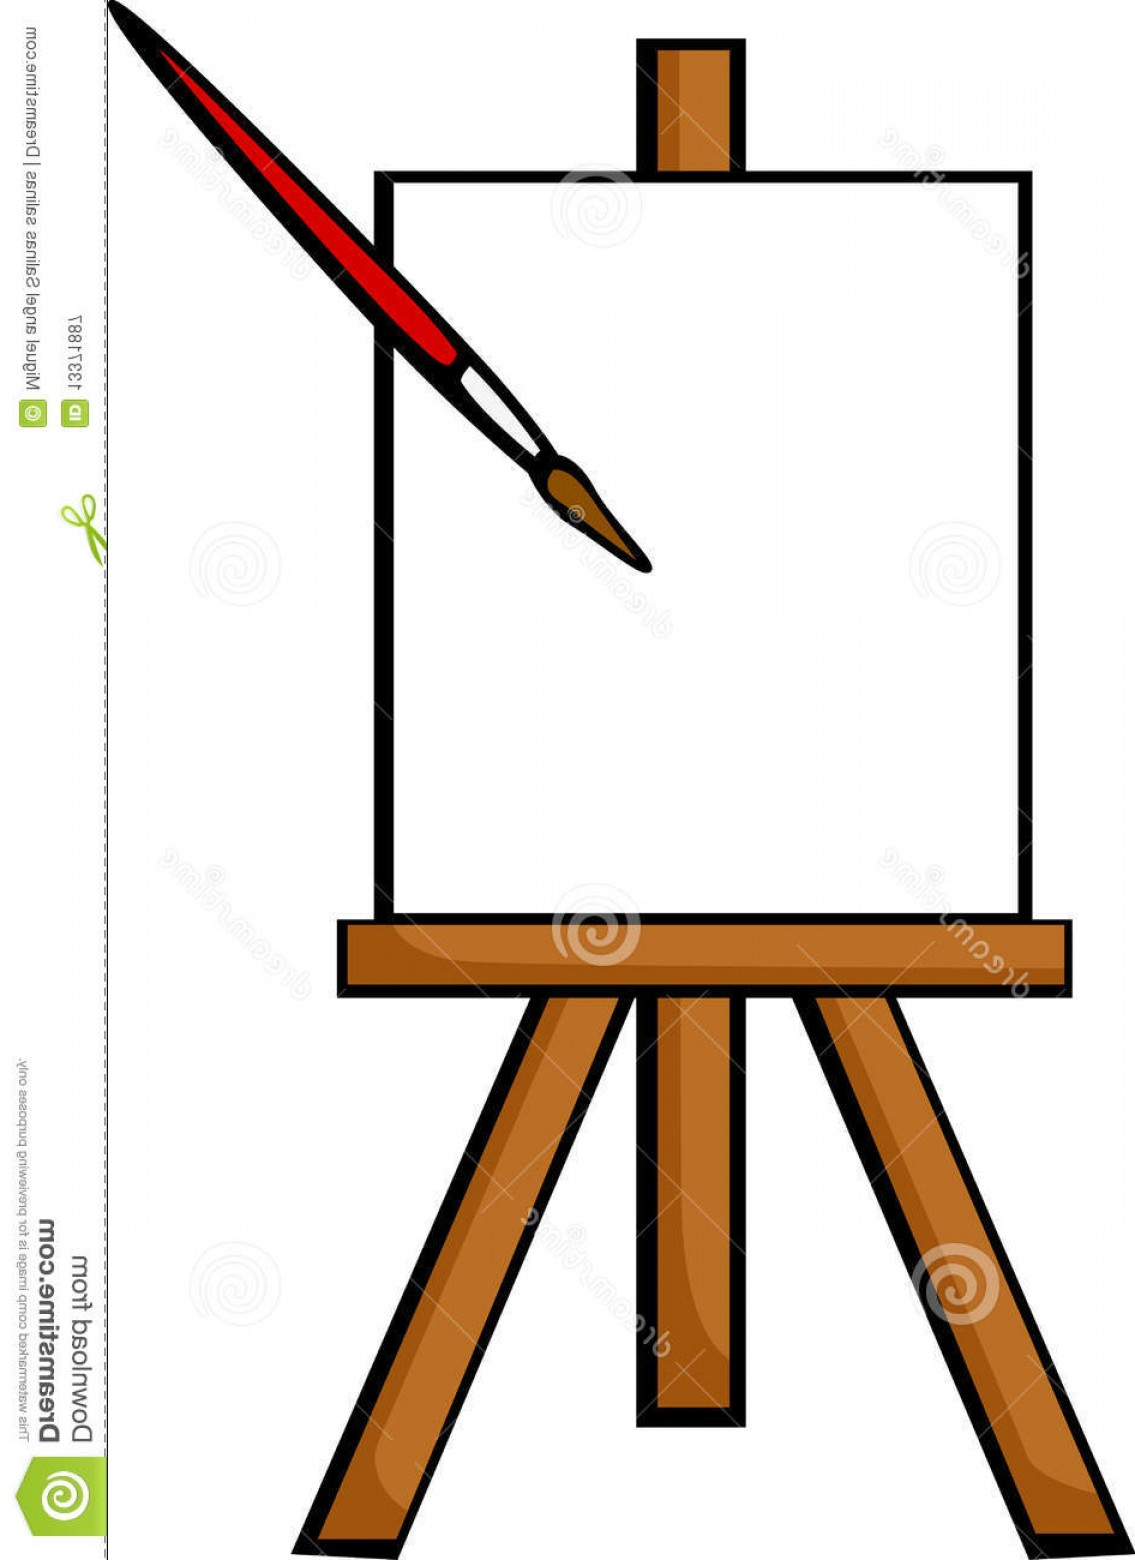 1135x1560 Royalty Free Stock Photography Blank Canvas Easel Vector